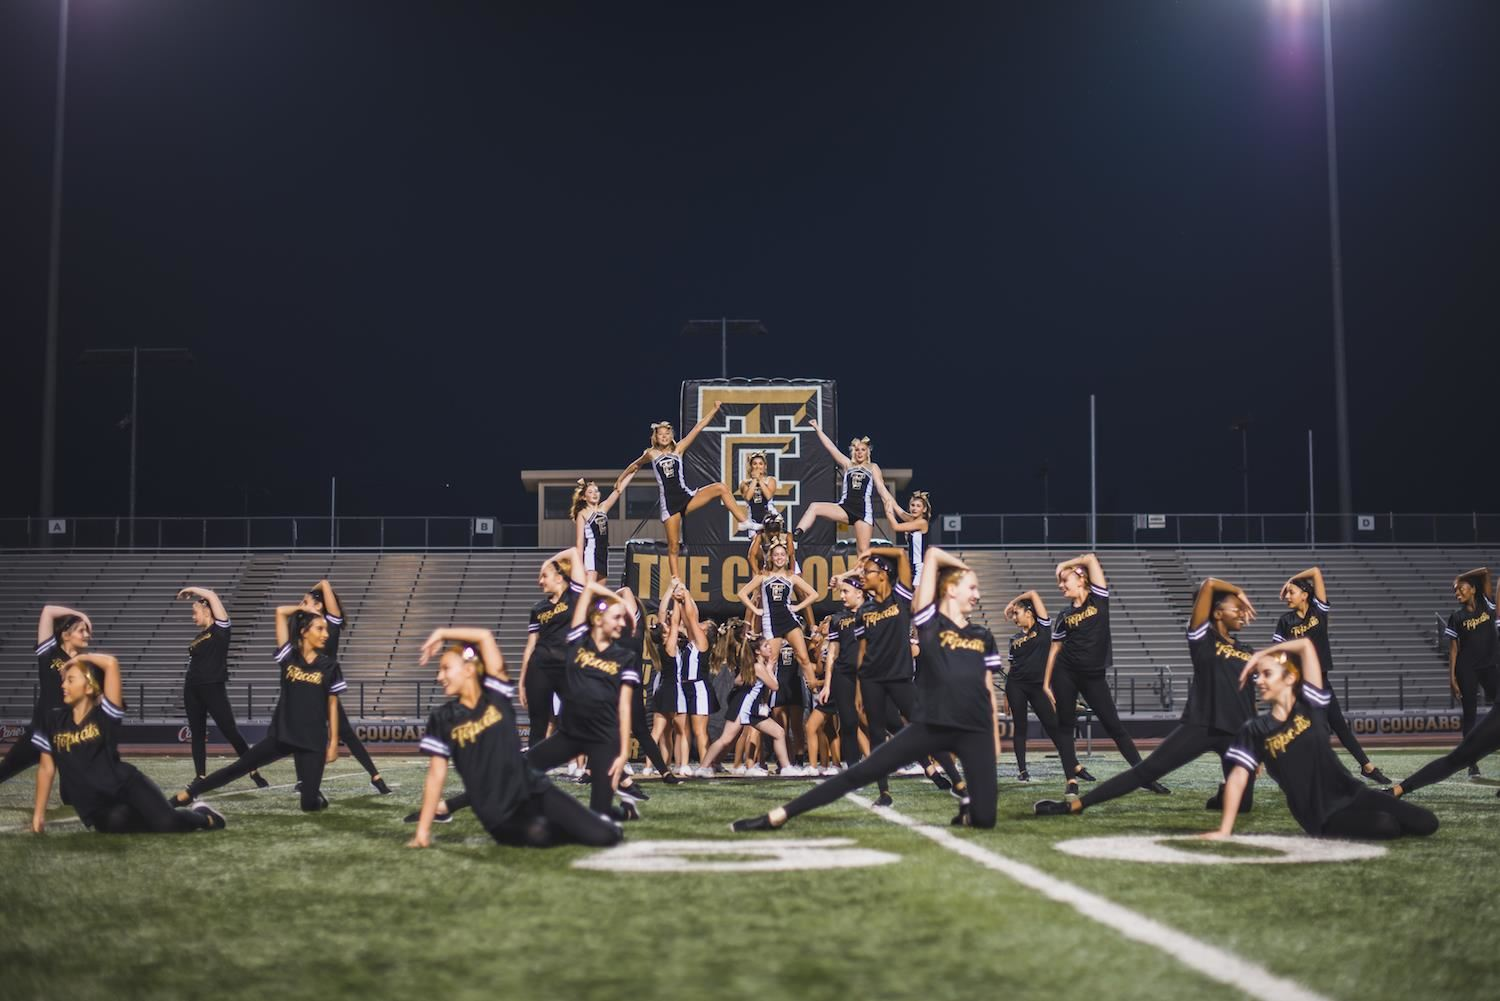 the colony cheer and dance teams do a routine together